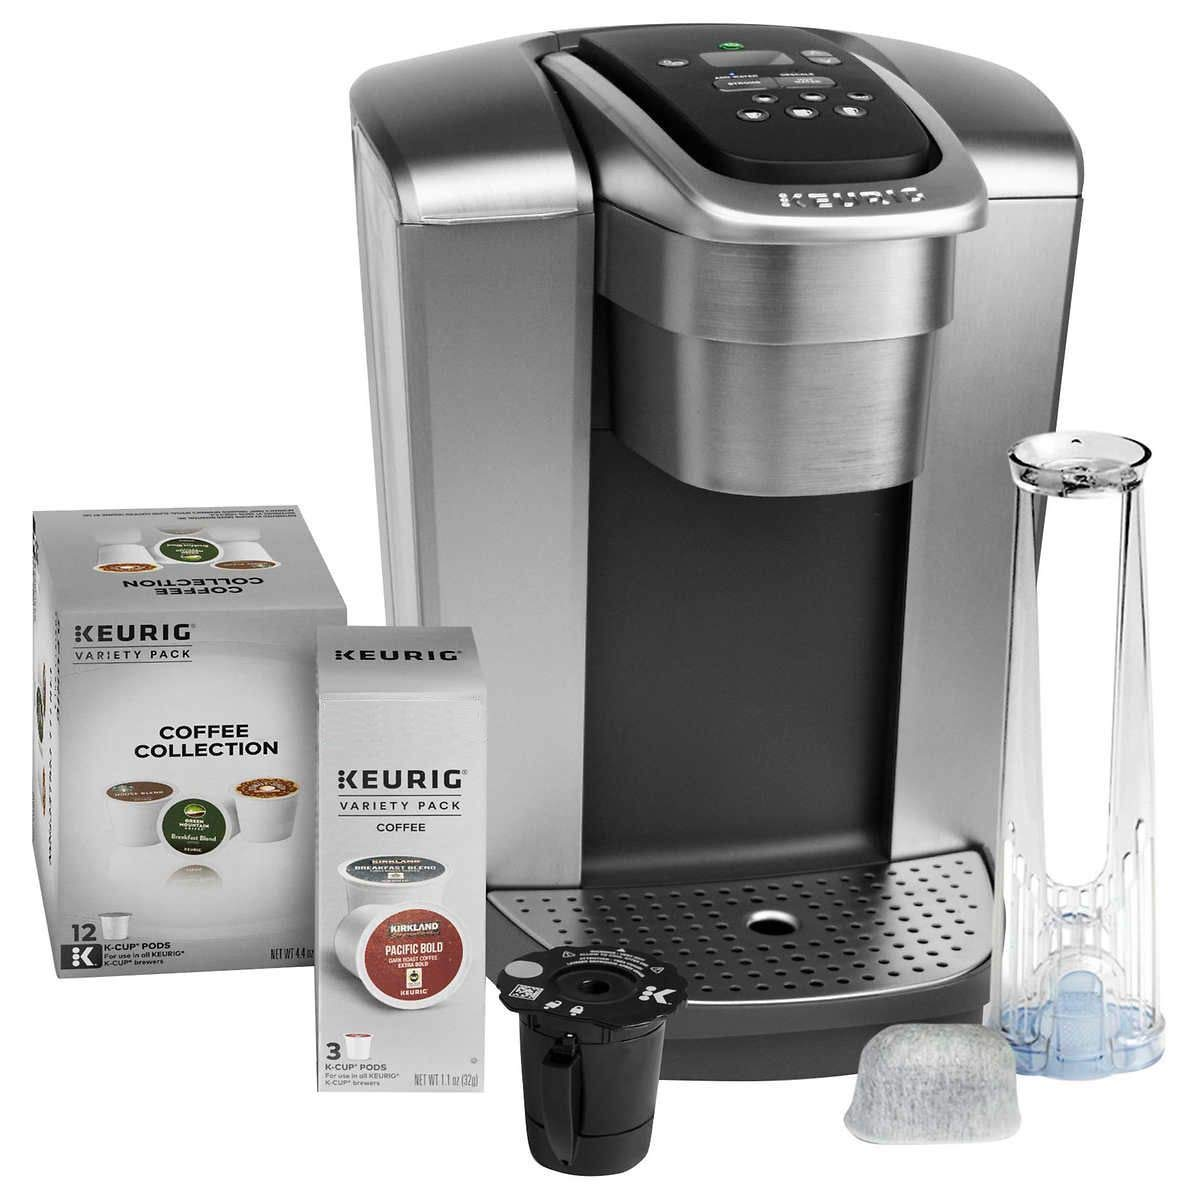 Keurig Fil K-Elite C Single Serve Coffee Maker (Brushed Silver) with 15, Water Filter, and My K-Cup, 2, by Keurig